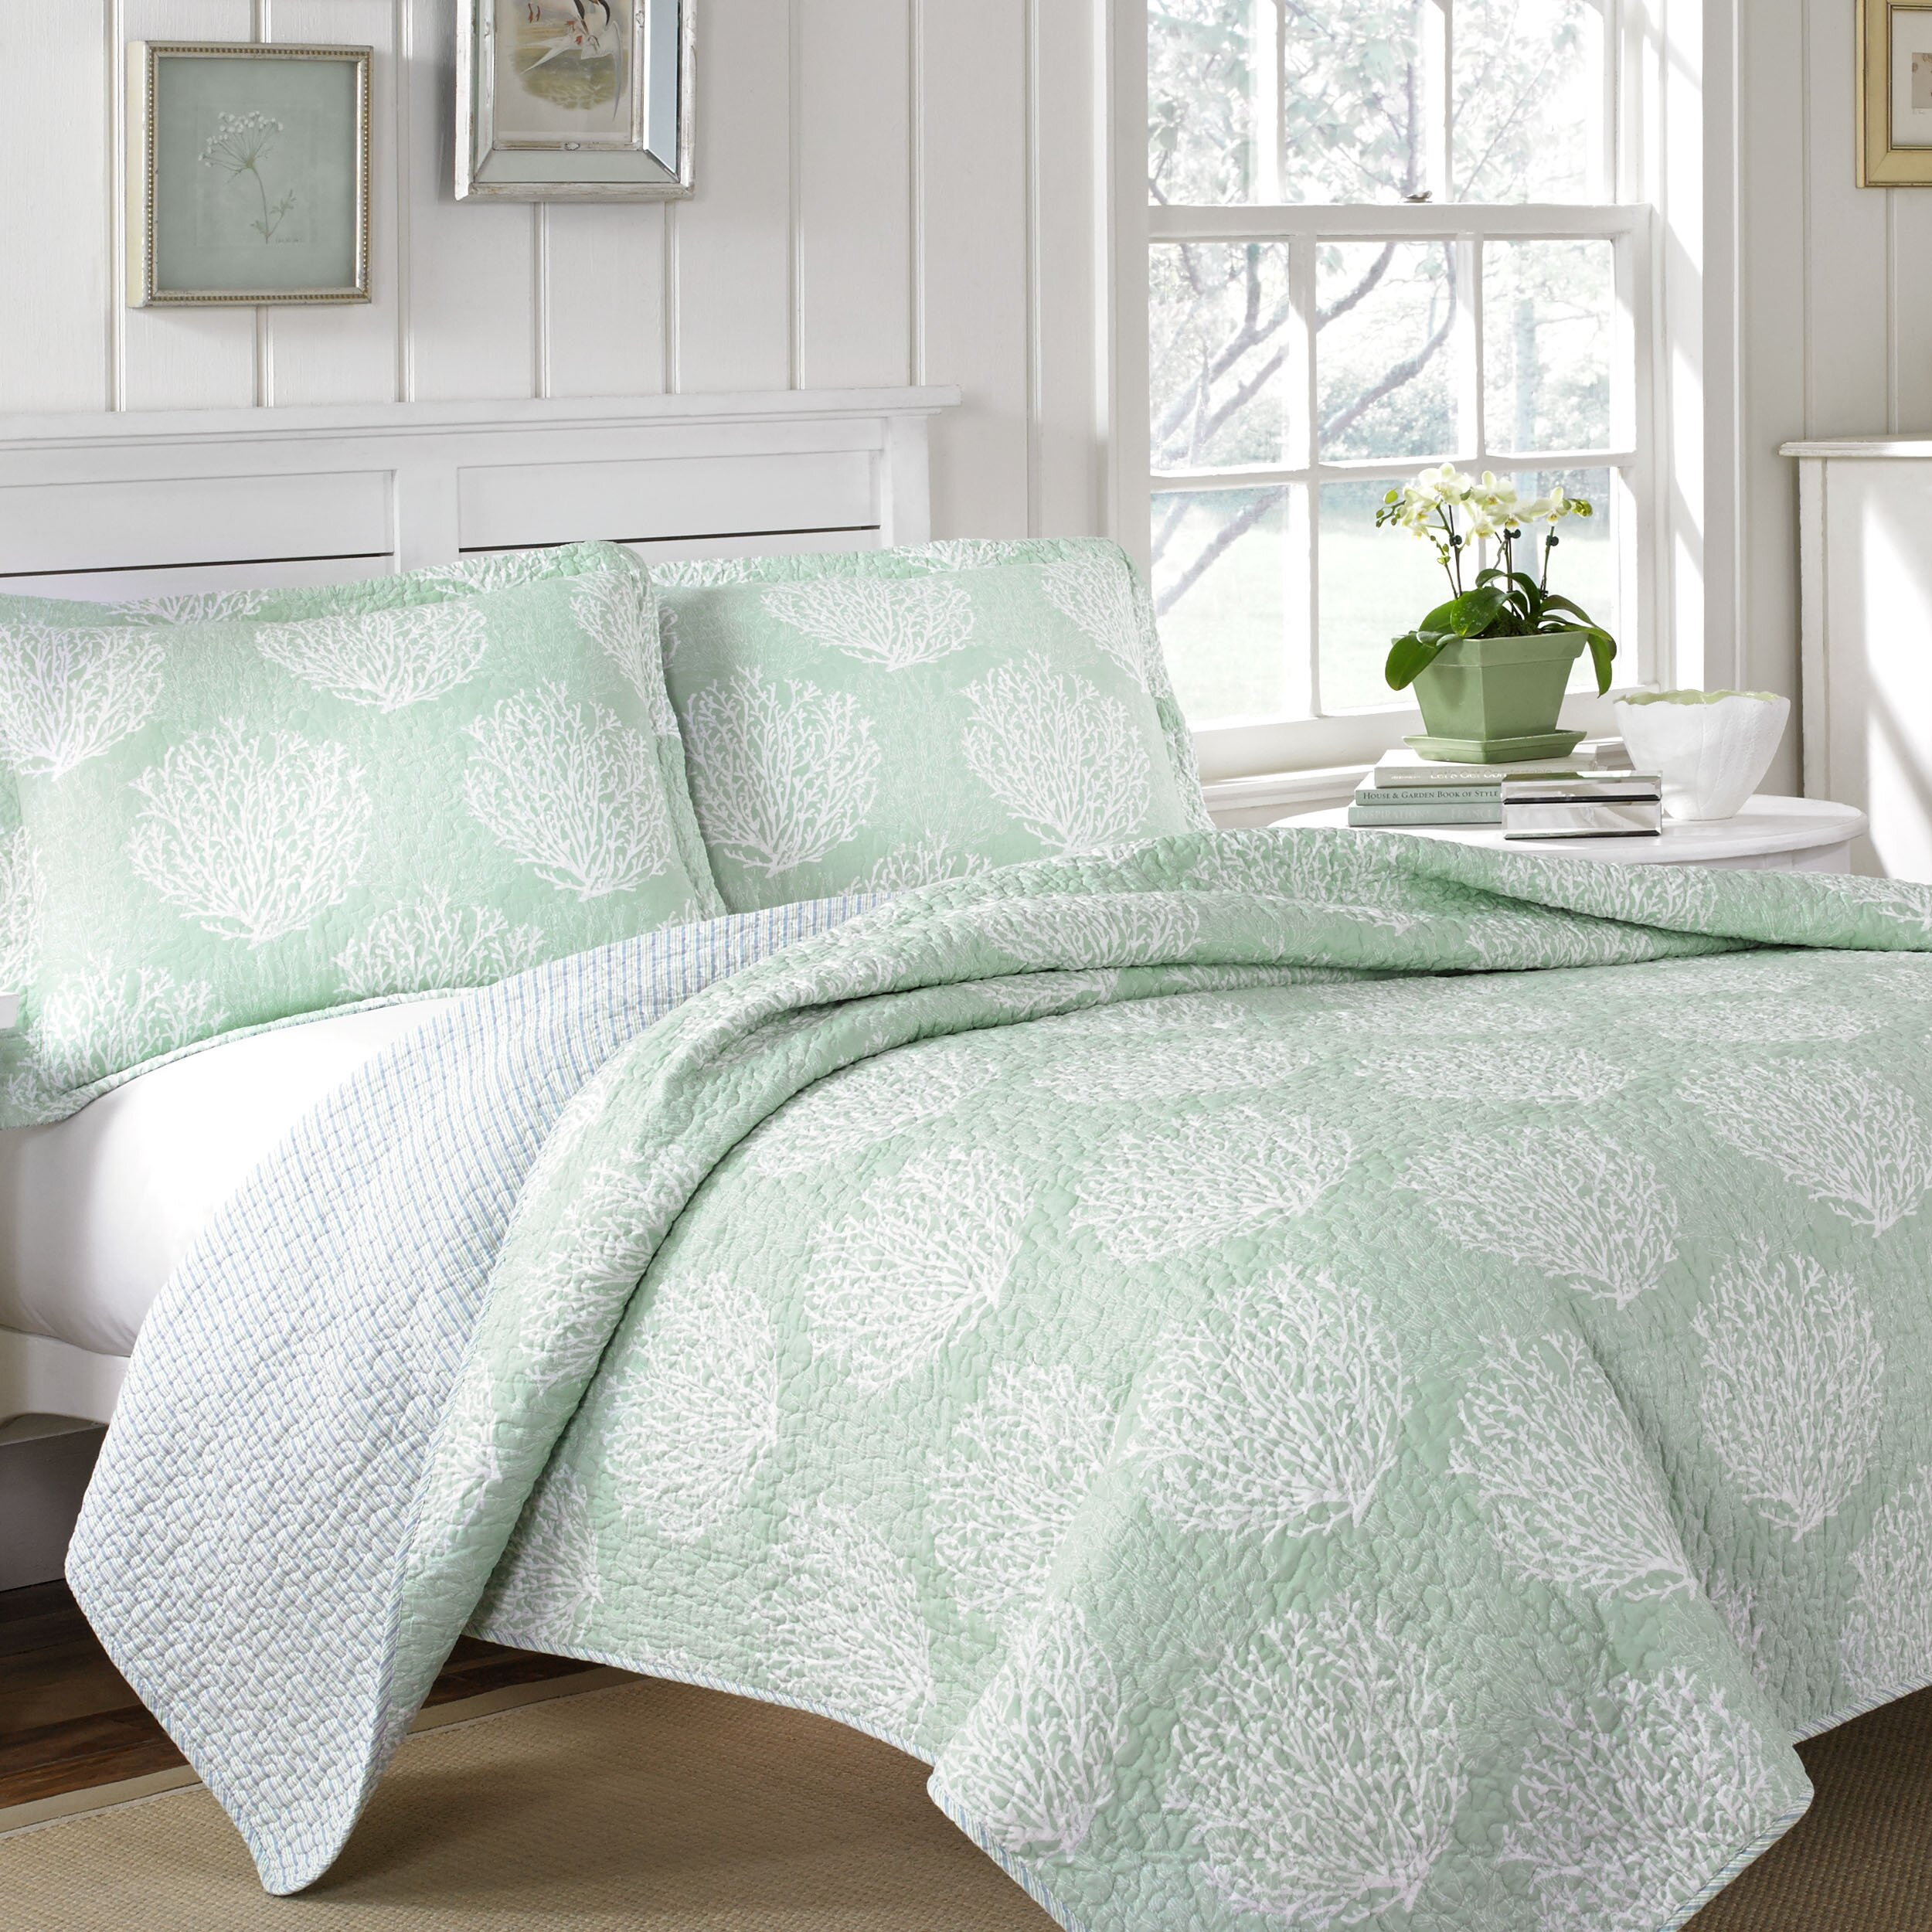 laura ashley home laura ashley coral coast 3 piece quilt set reviews wayfair. Black Bedroom Furniture Sets. Home Design Ideas